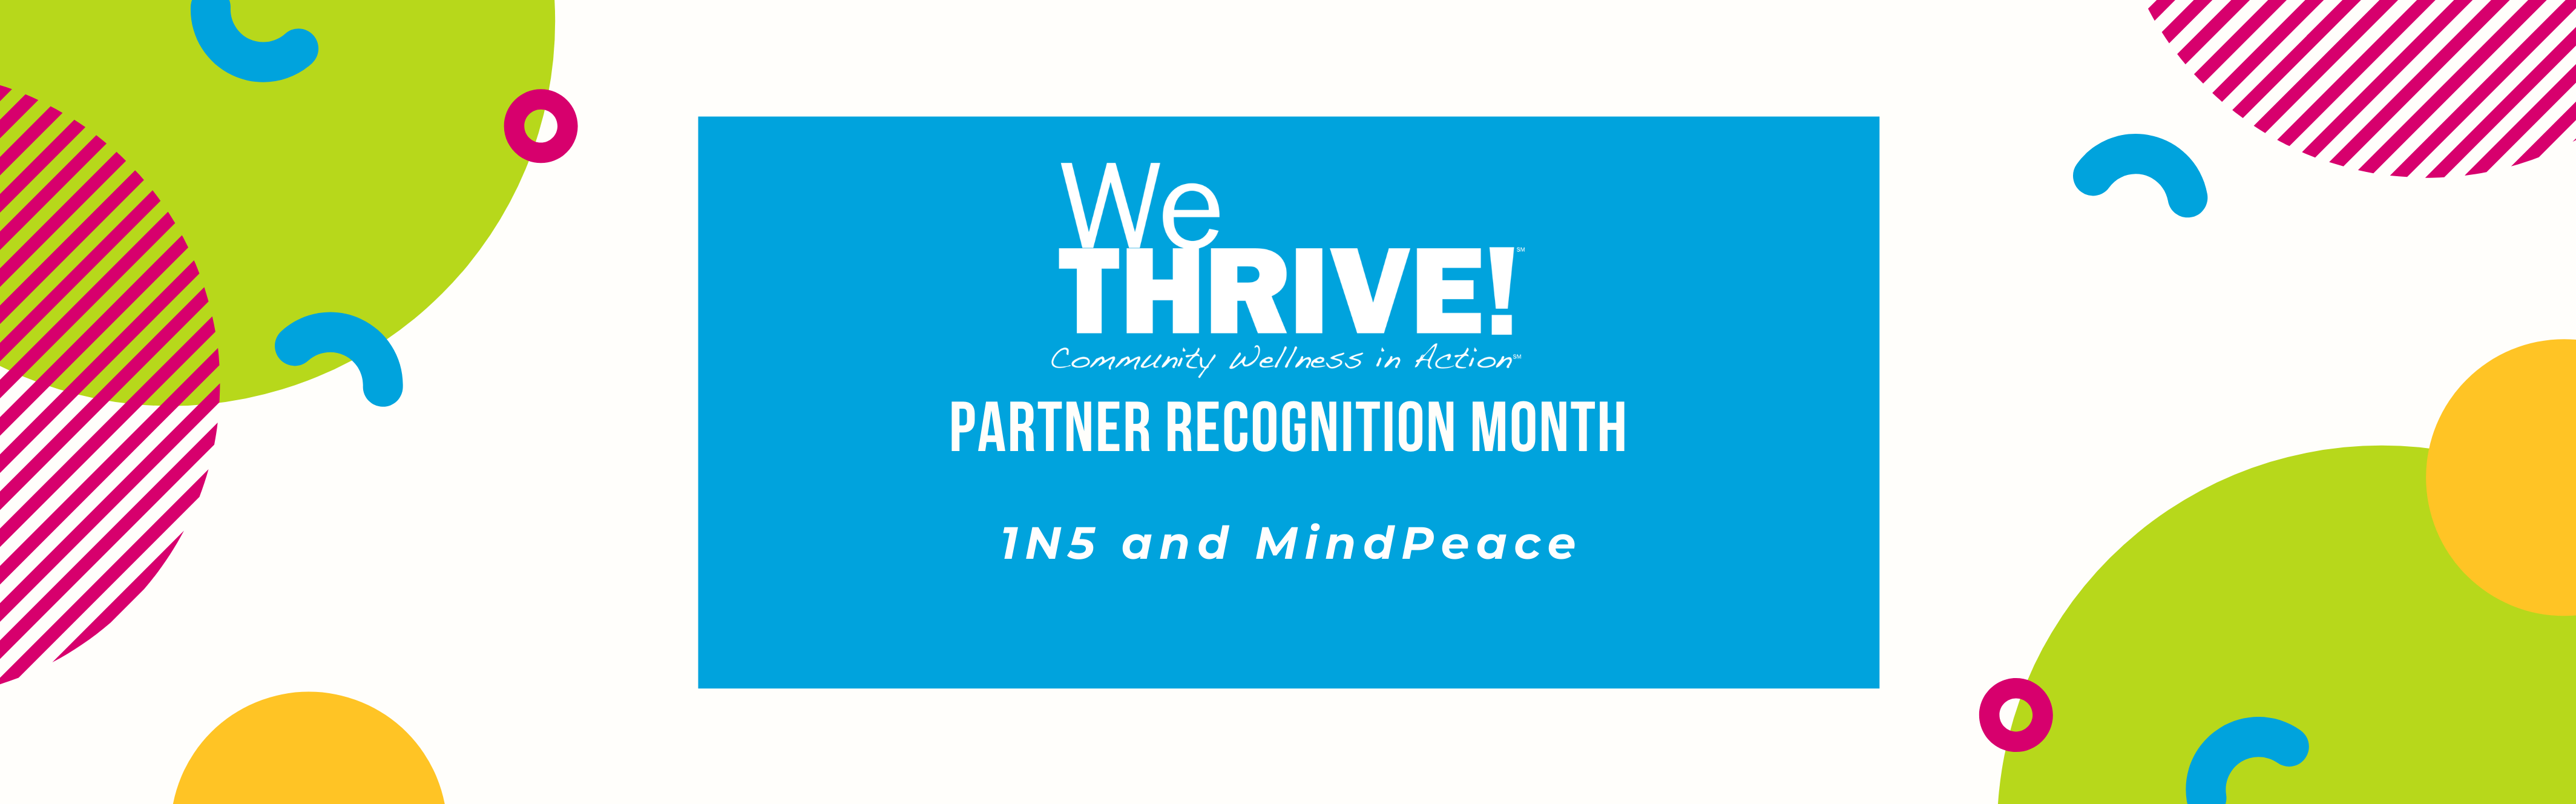 graphic reads: We thrive partner recognition month 1N5 and Mind Peace.